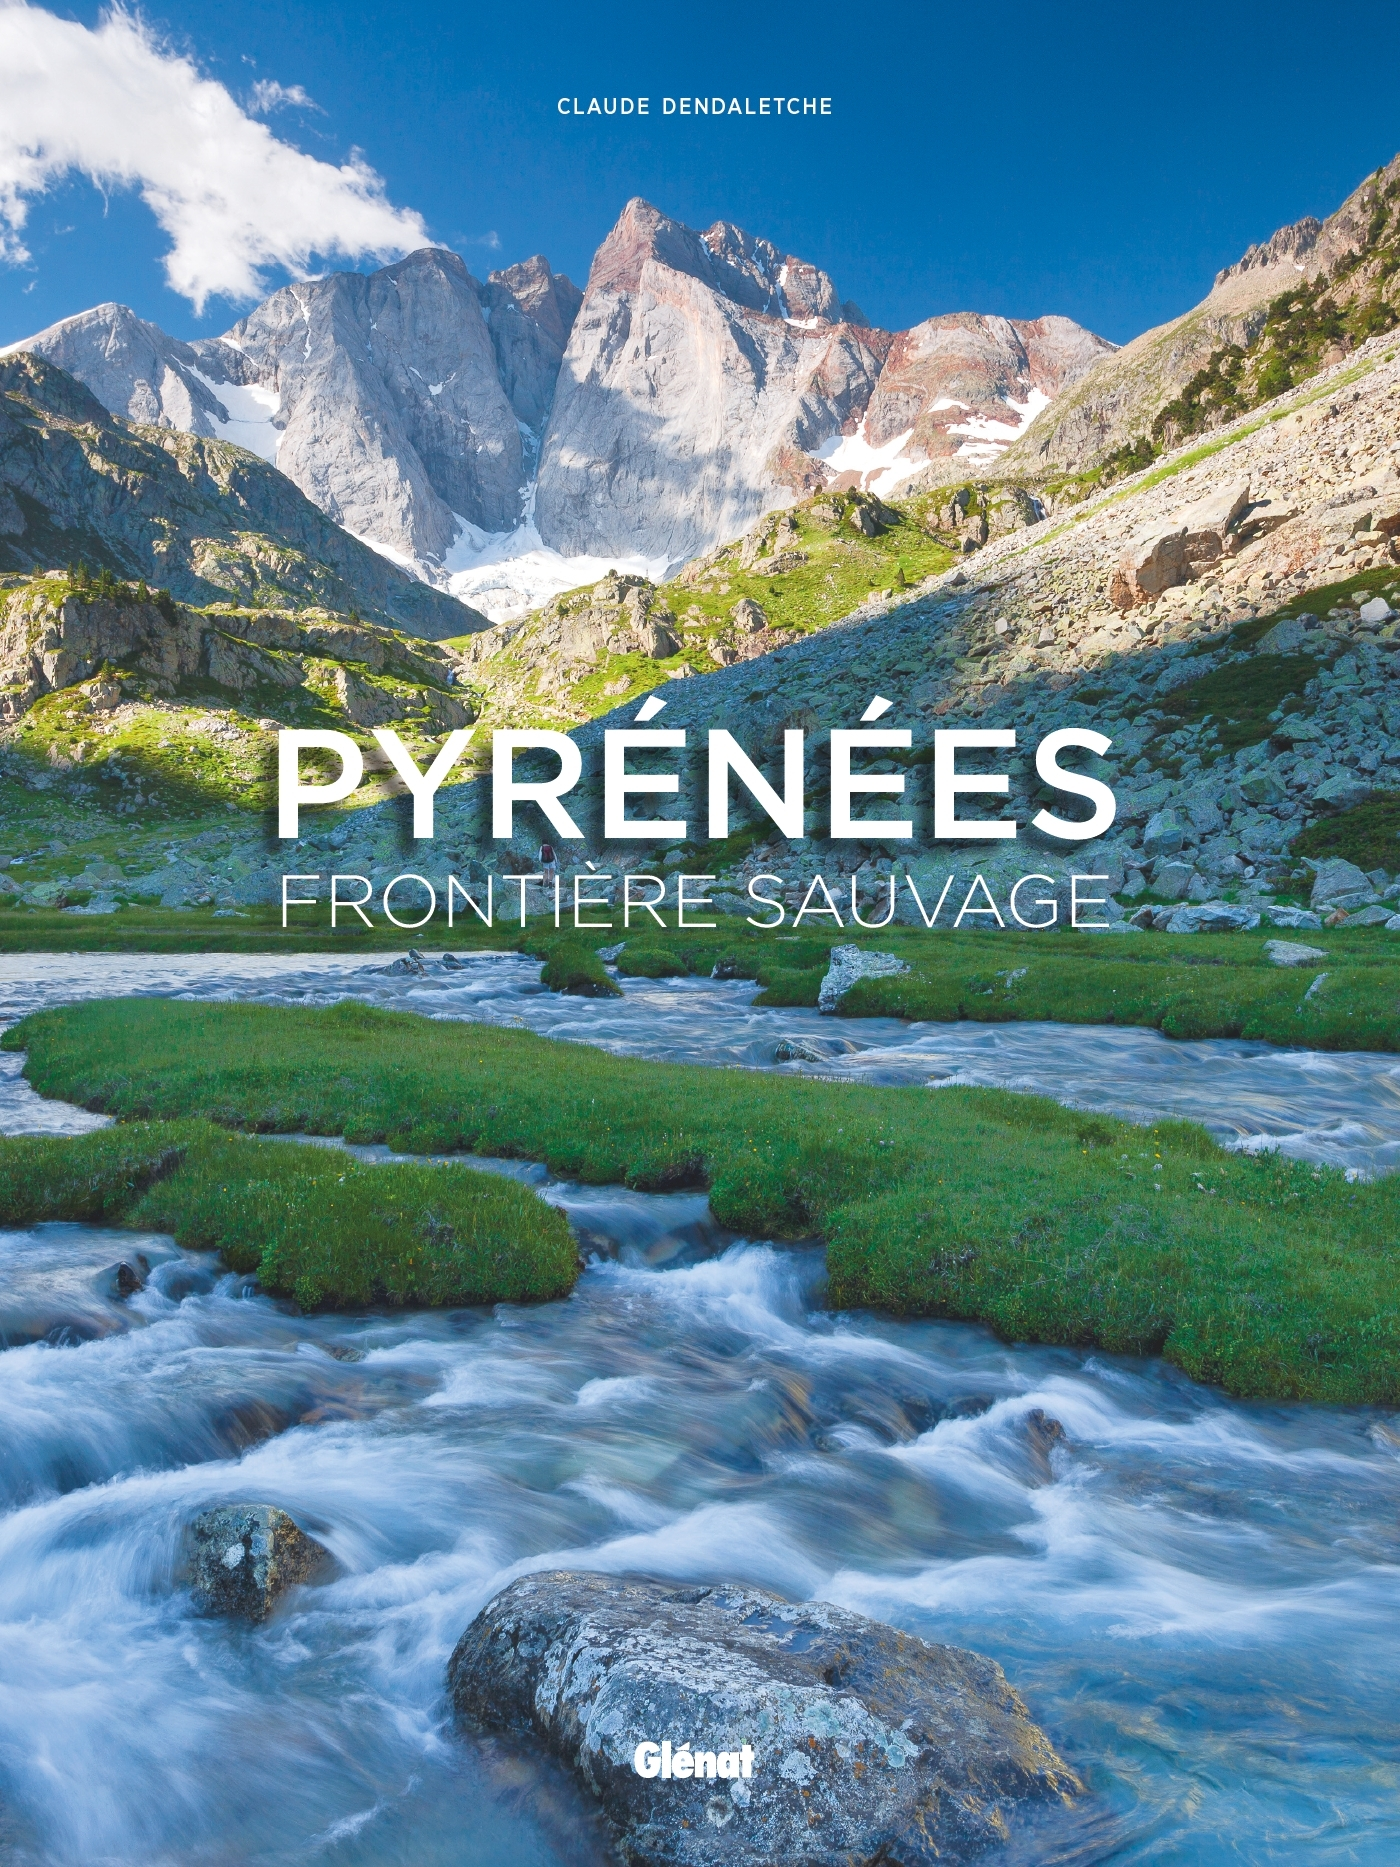 PYRENEES, FRONTIERE SAUVAGE